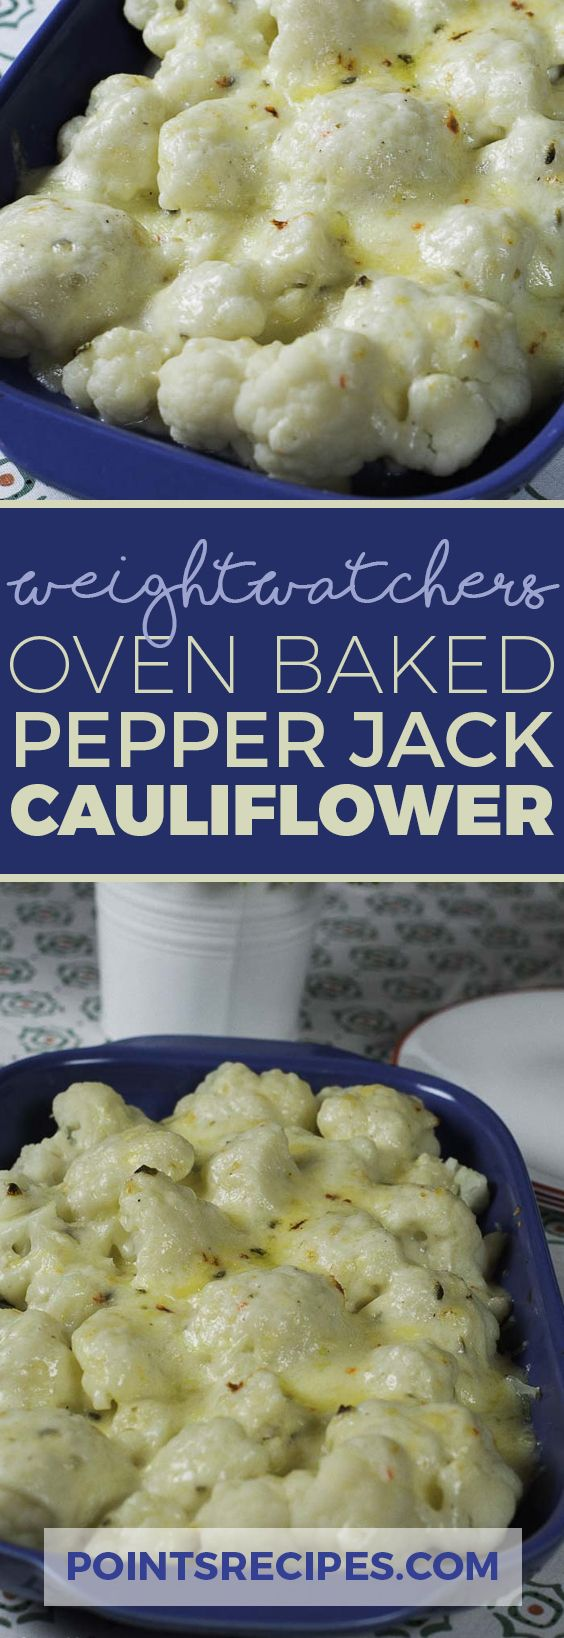 Baked Cauliflower with Pepper Jack Cheese (Weight Watchers SmartPoints)